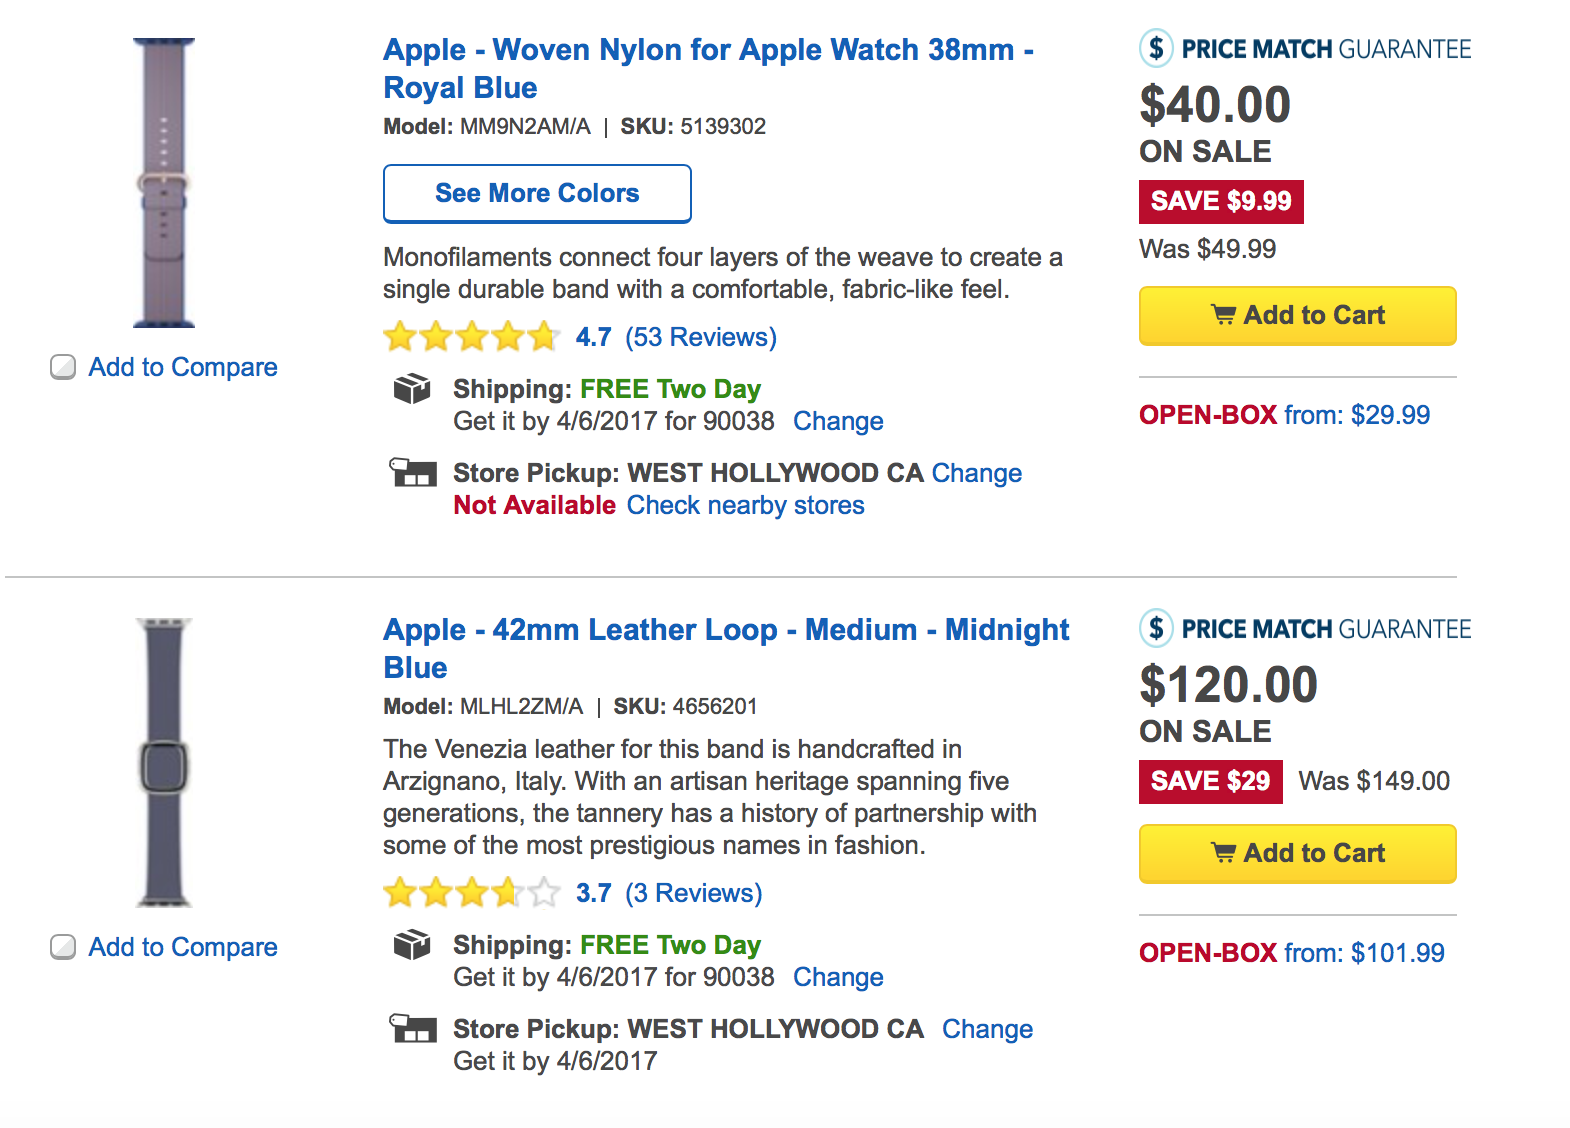 Apple Watch Band Sale at Best Buy Today | Watchaware